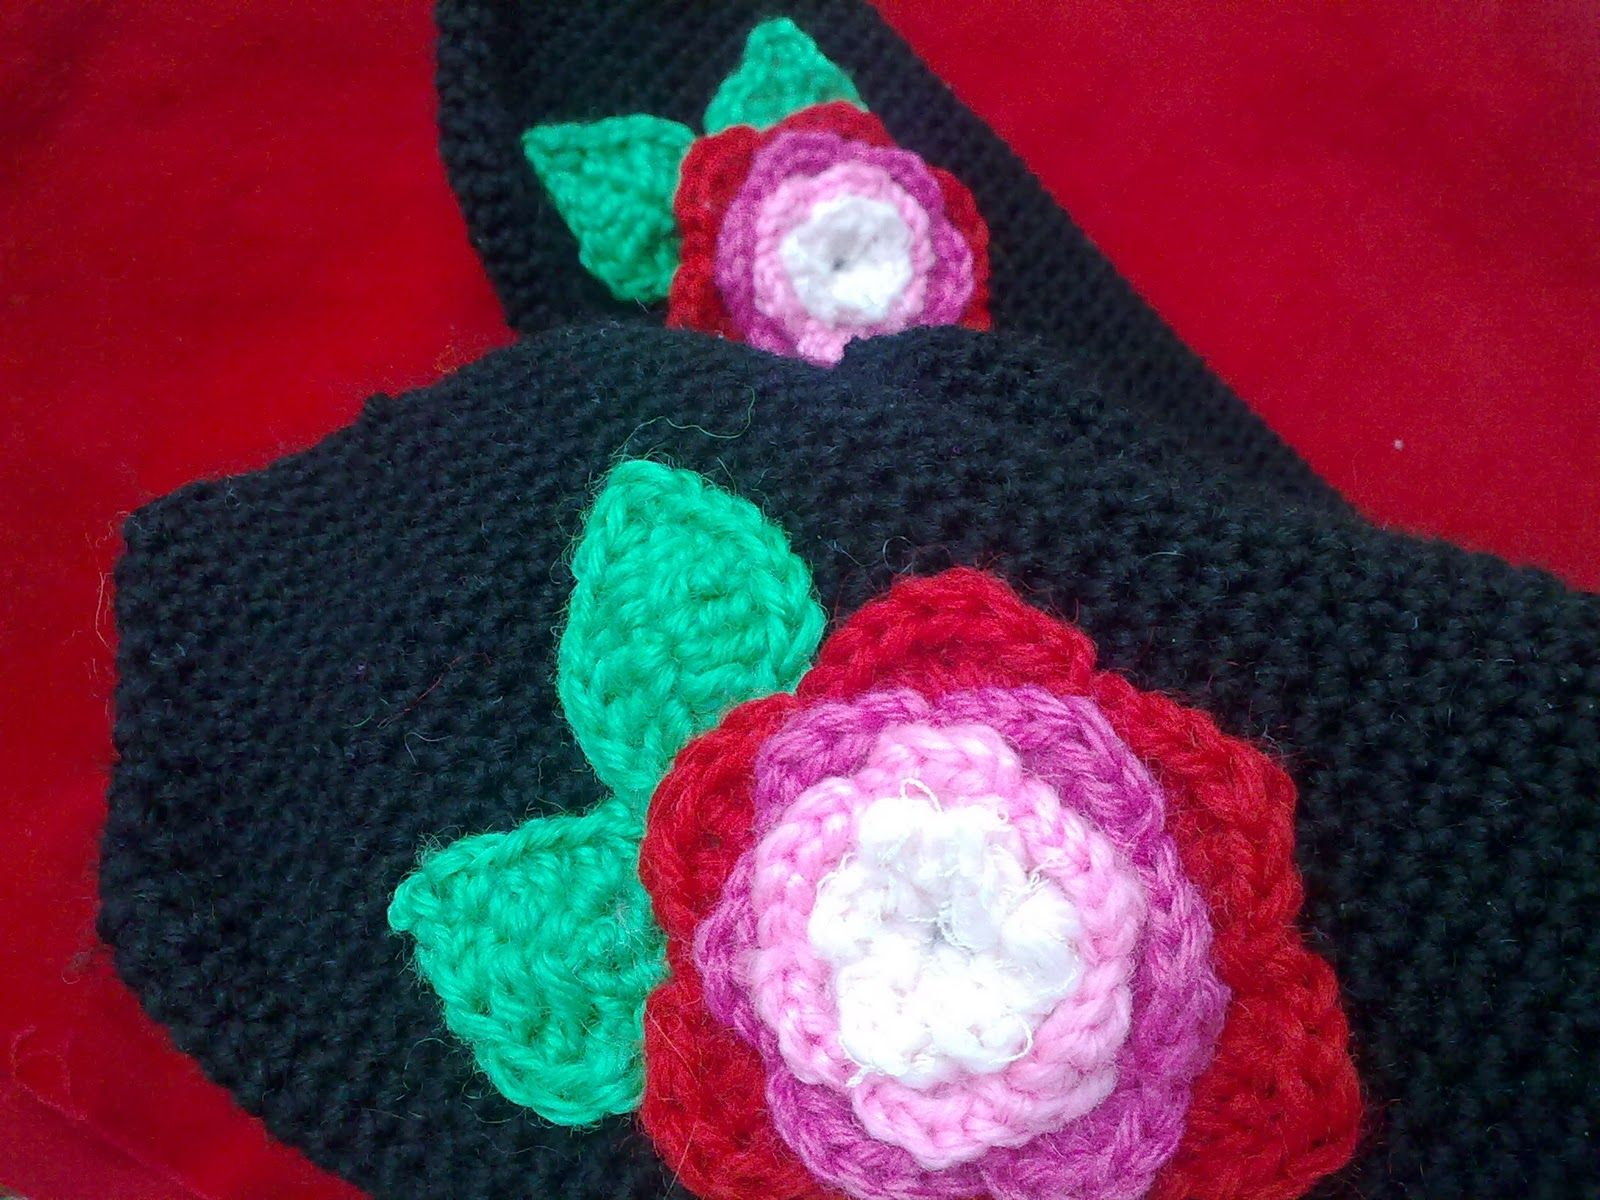 Crocheted rose mittens